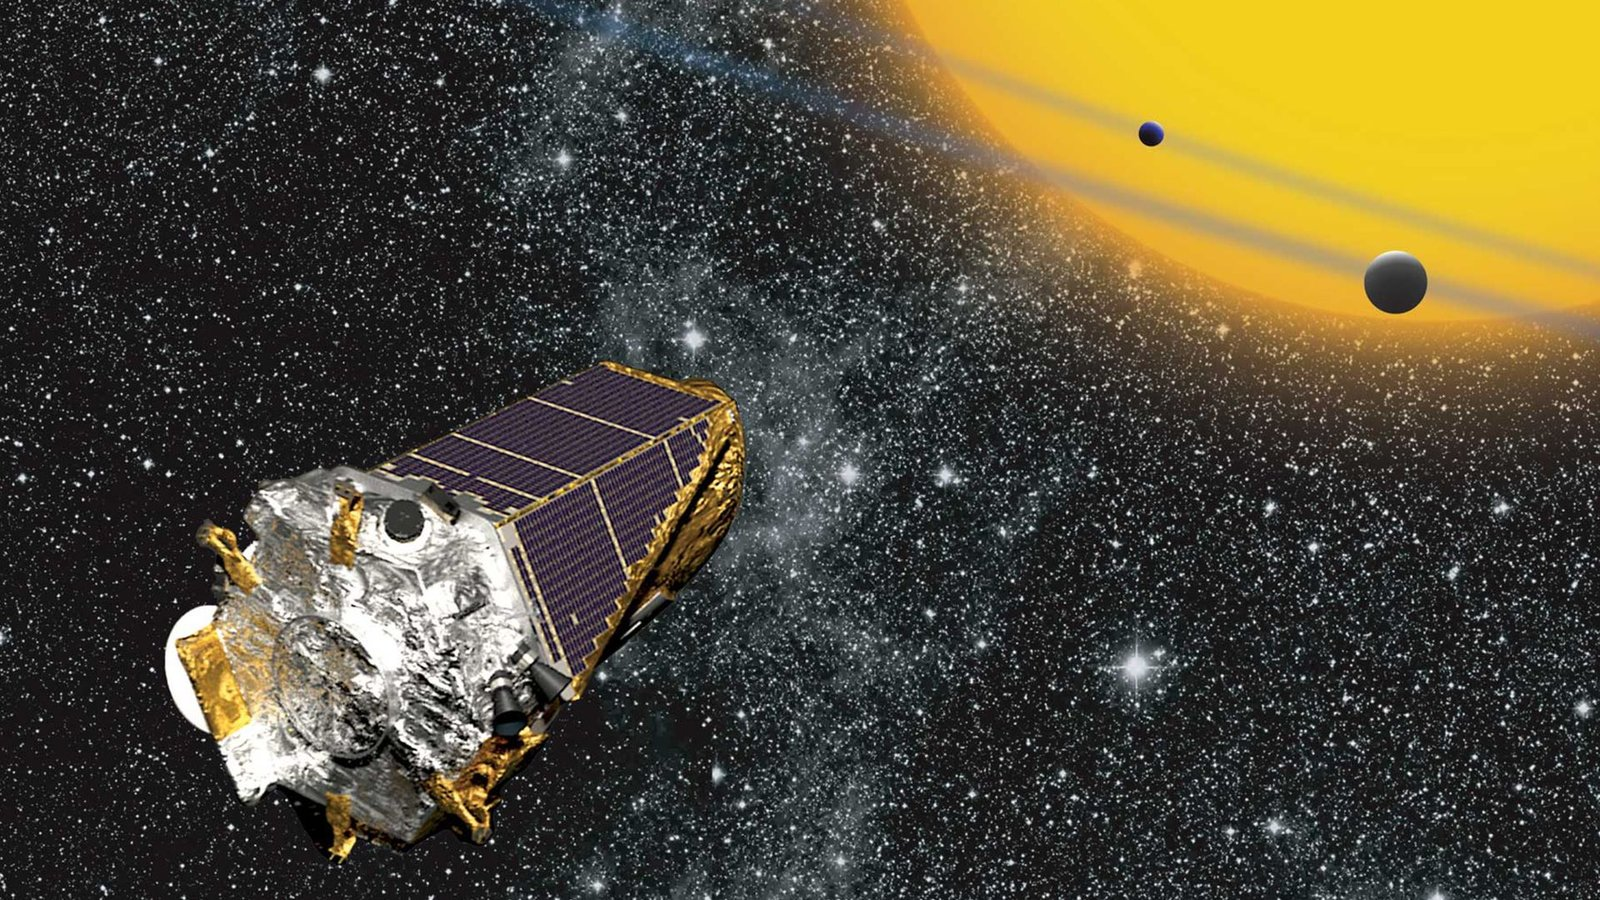 Closing in on Earthlike Exoplanets